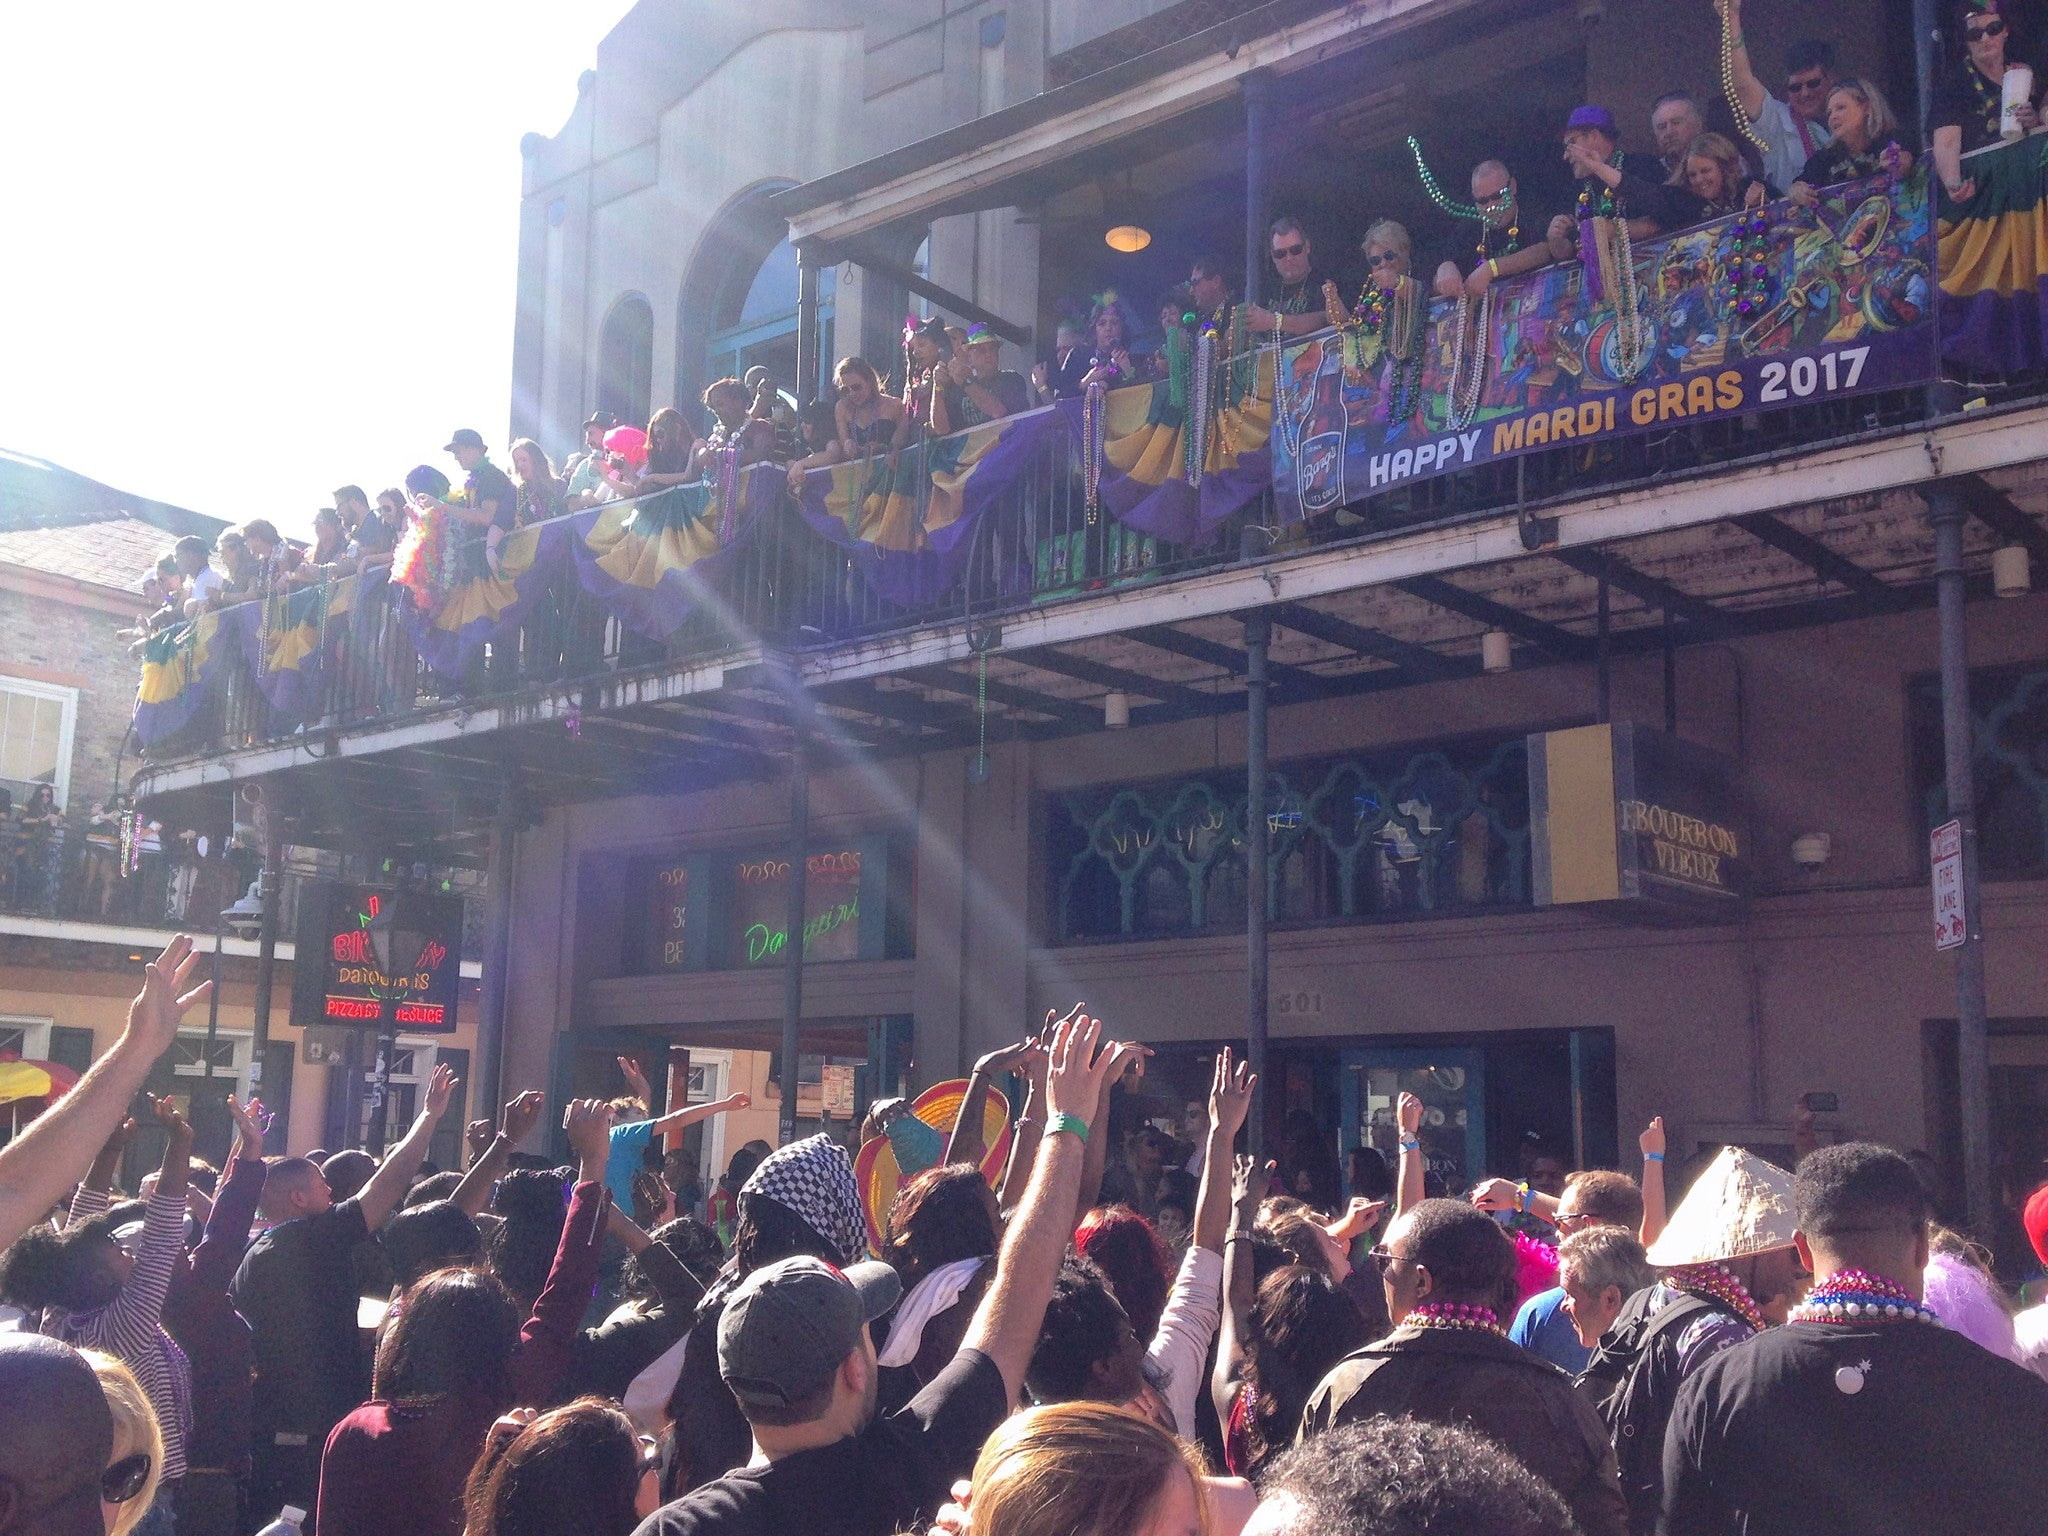 5 Highlights from Mardi Gras 2017